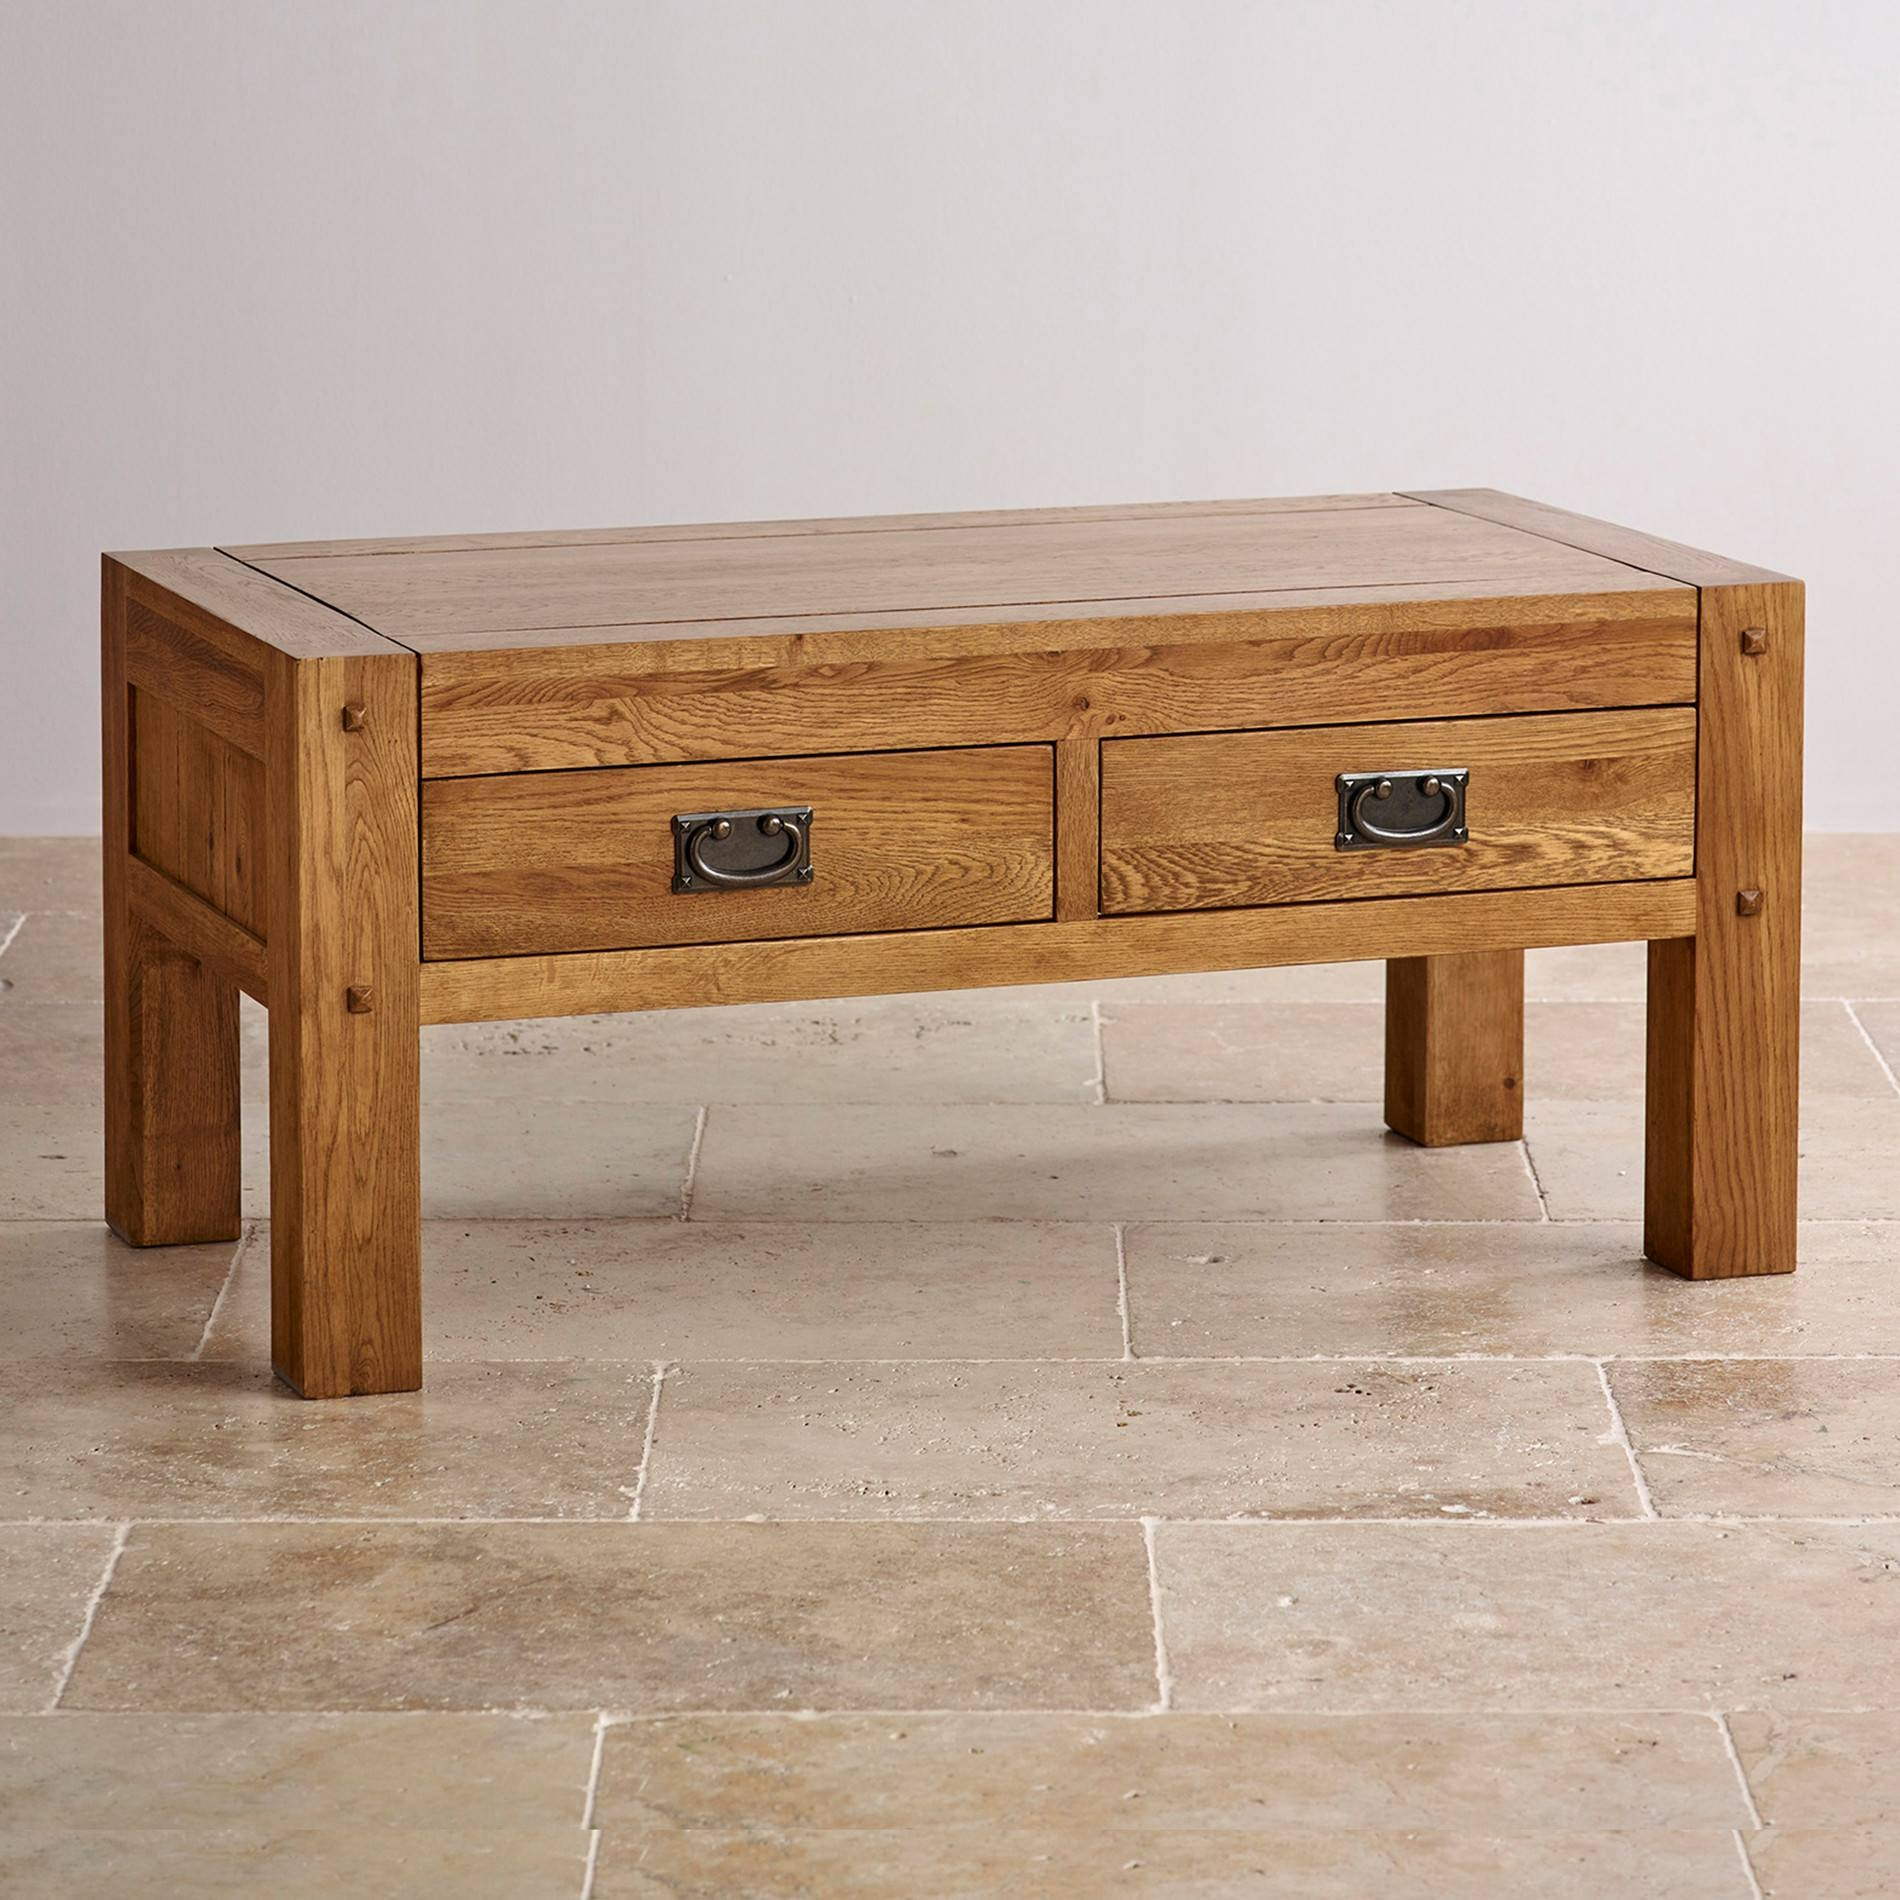 Quercus Coffee Table | Rustic Solid Oak | Oak Furniture Land intended for Low Coffee Table With Storage (Image 15 of 15)